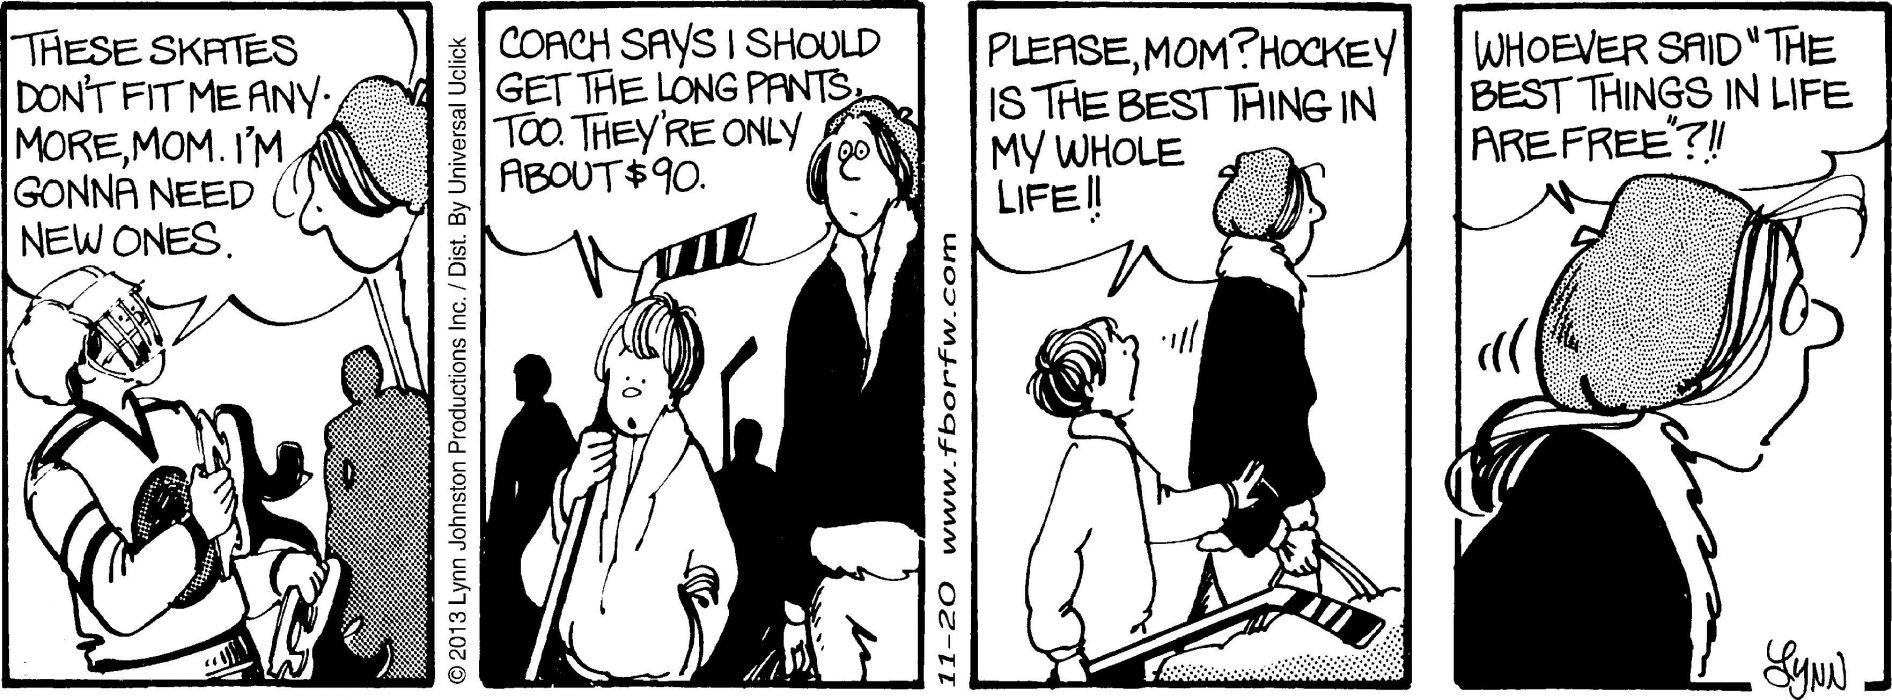 FOR-BETTER-OR-WORSE comicstrip comics funny humor better worse (54) wallpaper